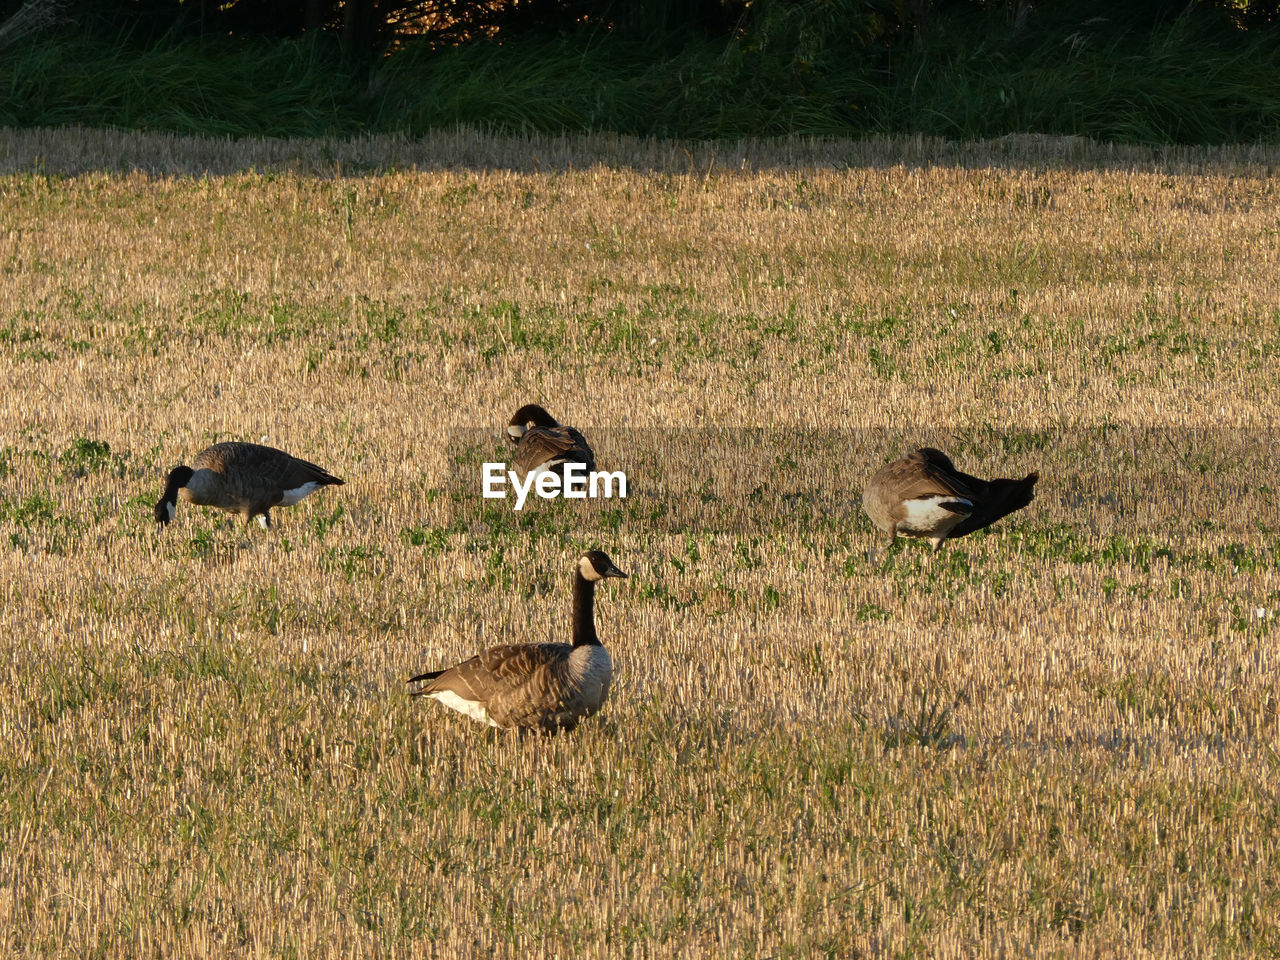 animals in the wild, animal wildlife, animal themes, animal, vertebrate, group of animals, grass, bird, no people, plant, goose, land, nature, day, environment, field, walking, beauty in nature, outdoors, medium group of animals, animal family, flock of birds, gosling, herbivorous